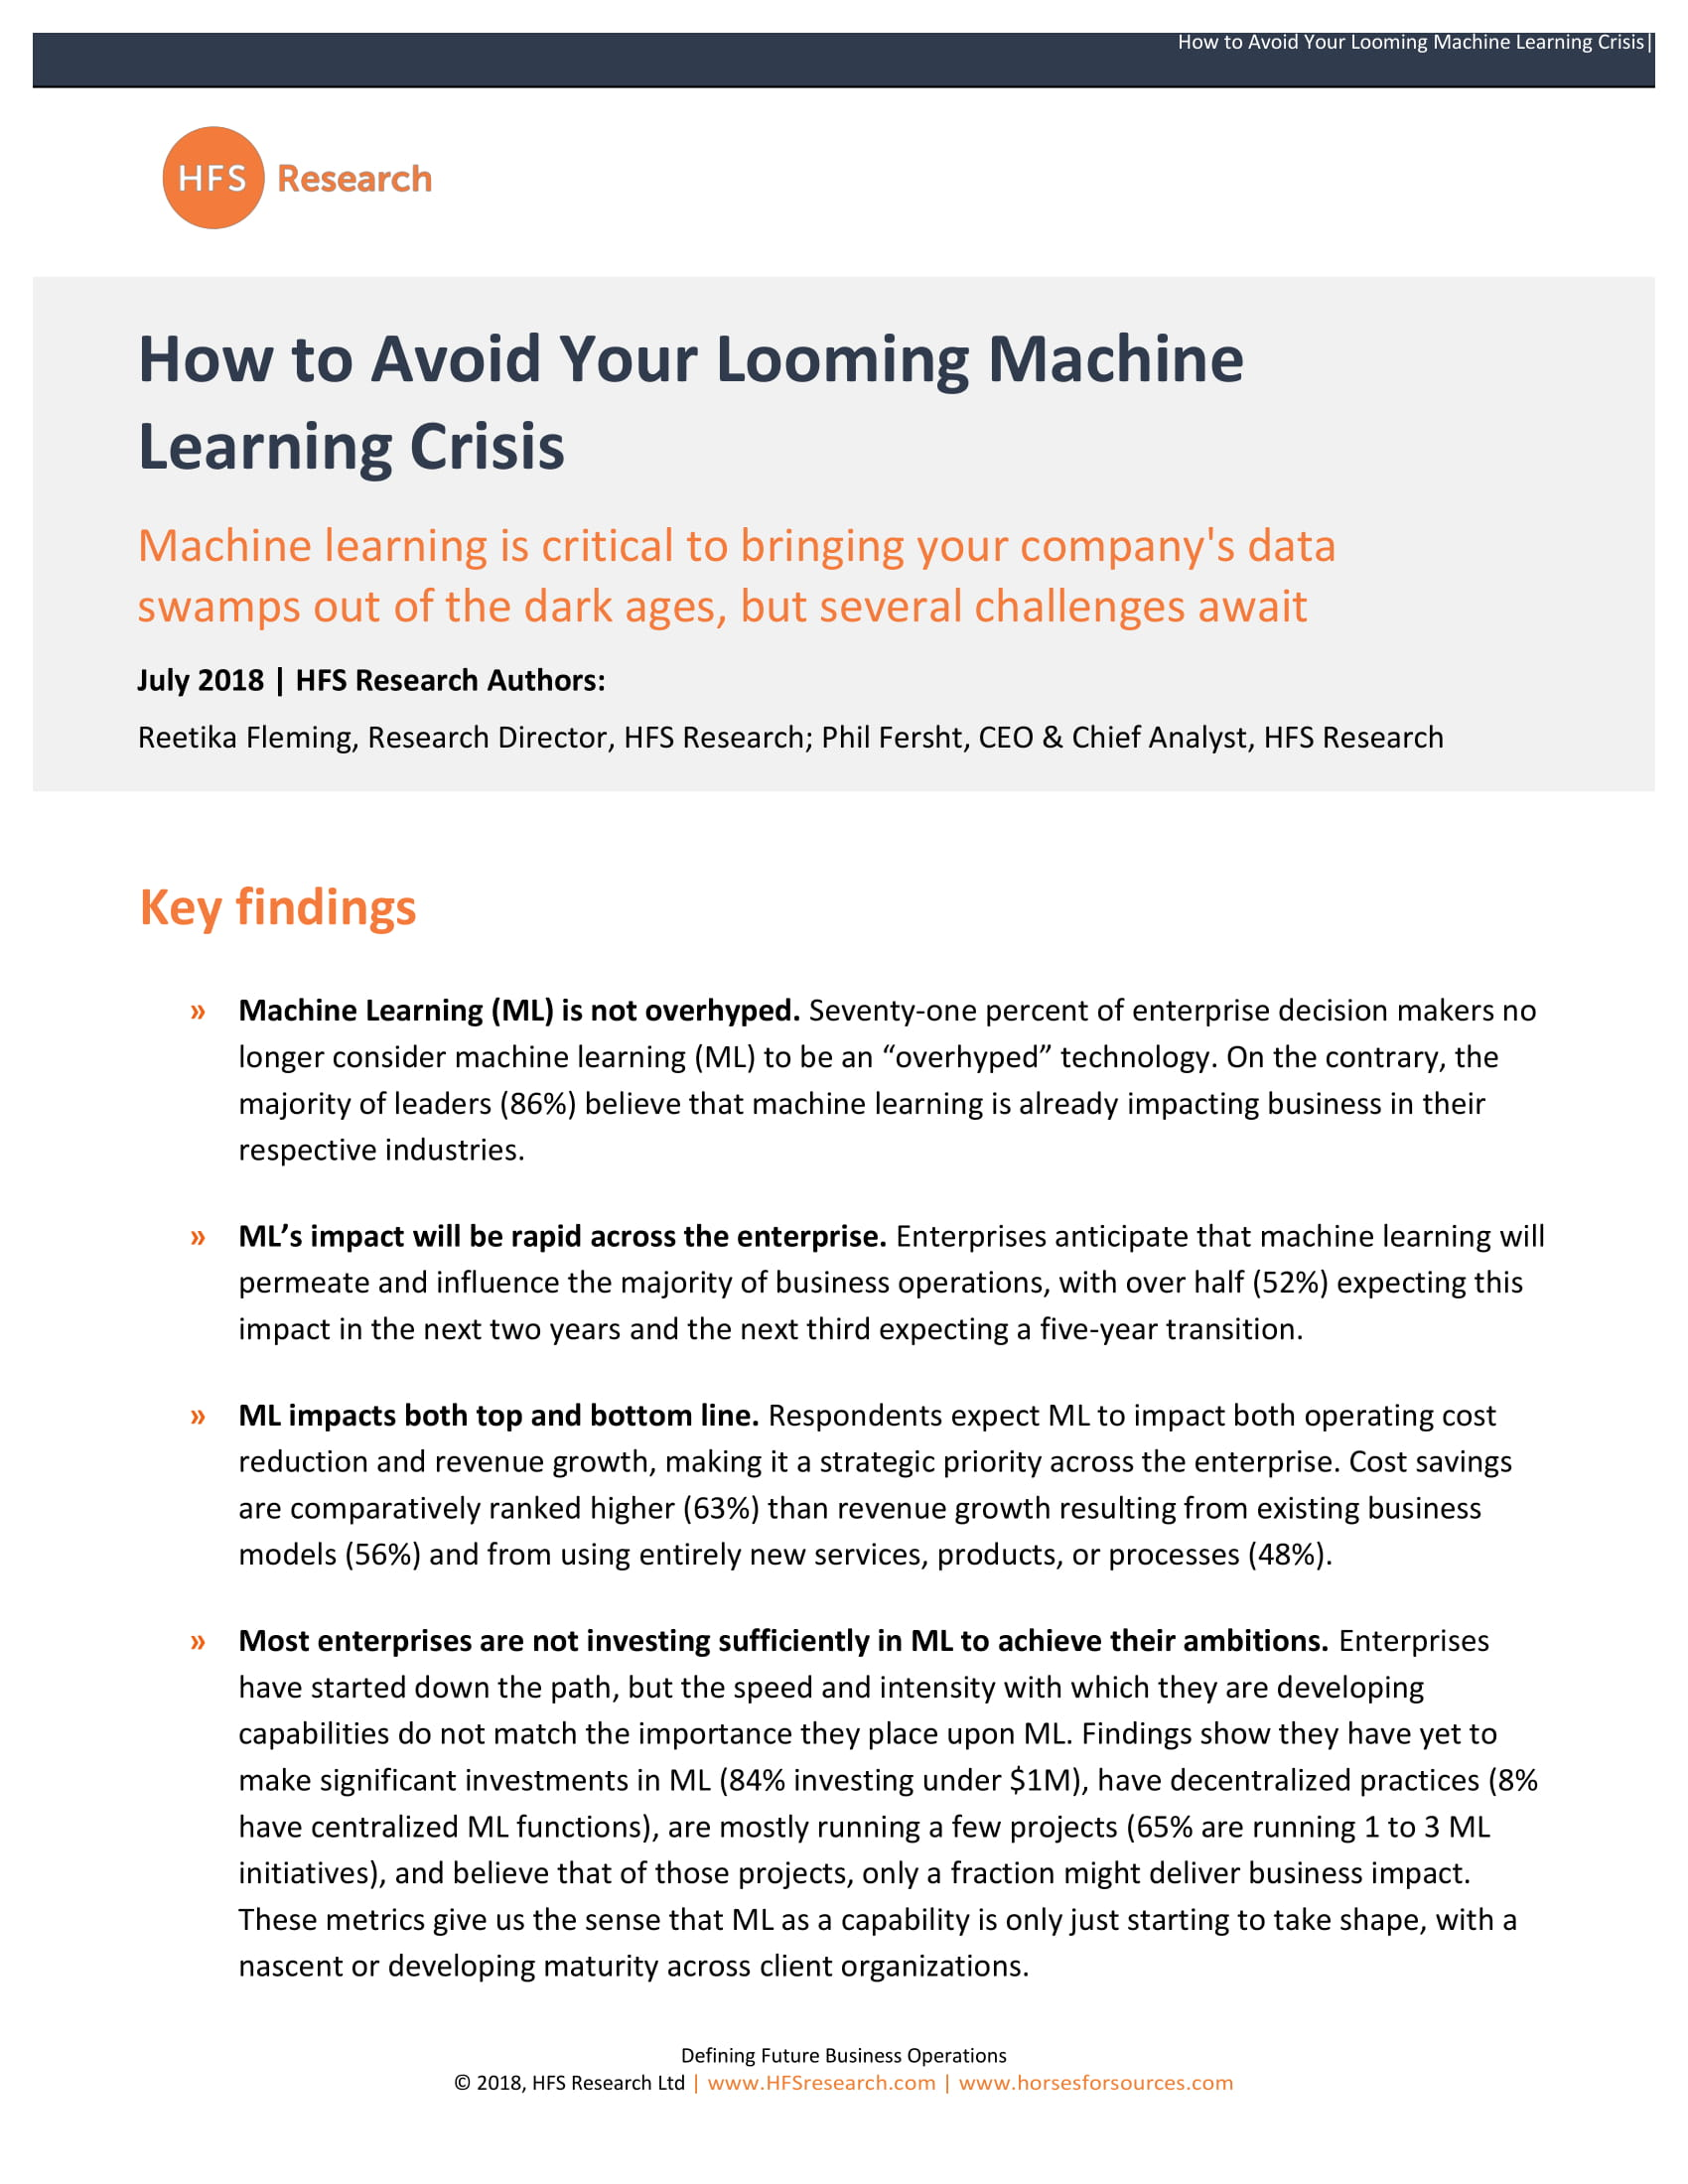 Page 1 - How to Avoid Your Looming Machine Learning Crisis - HFS Research